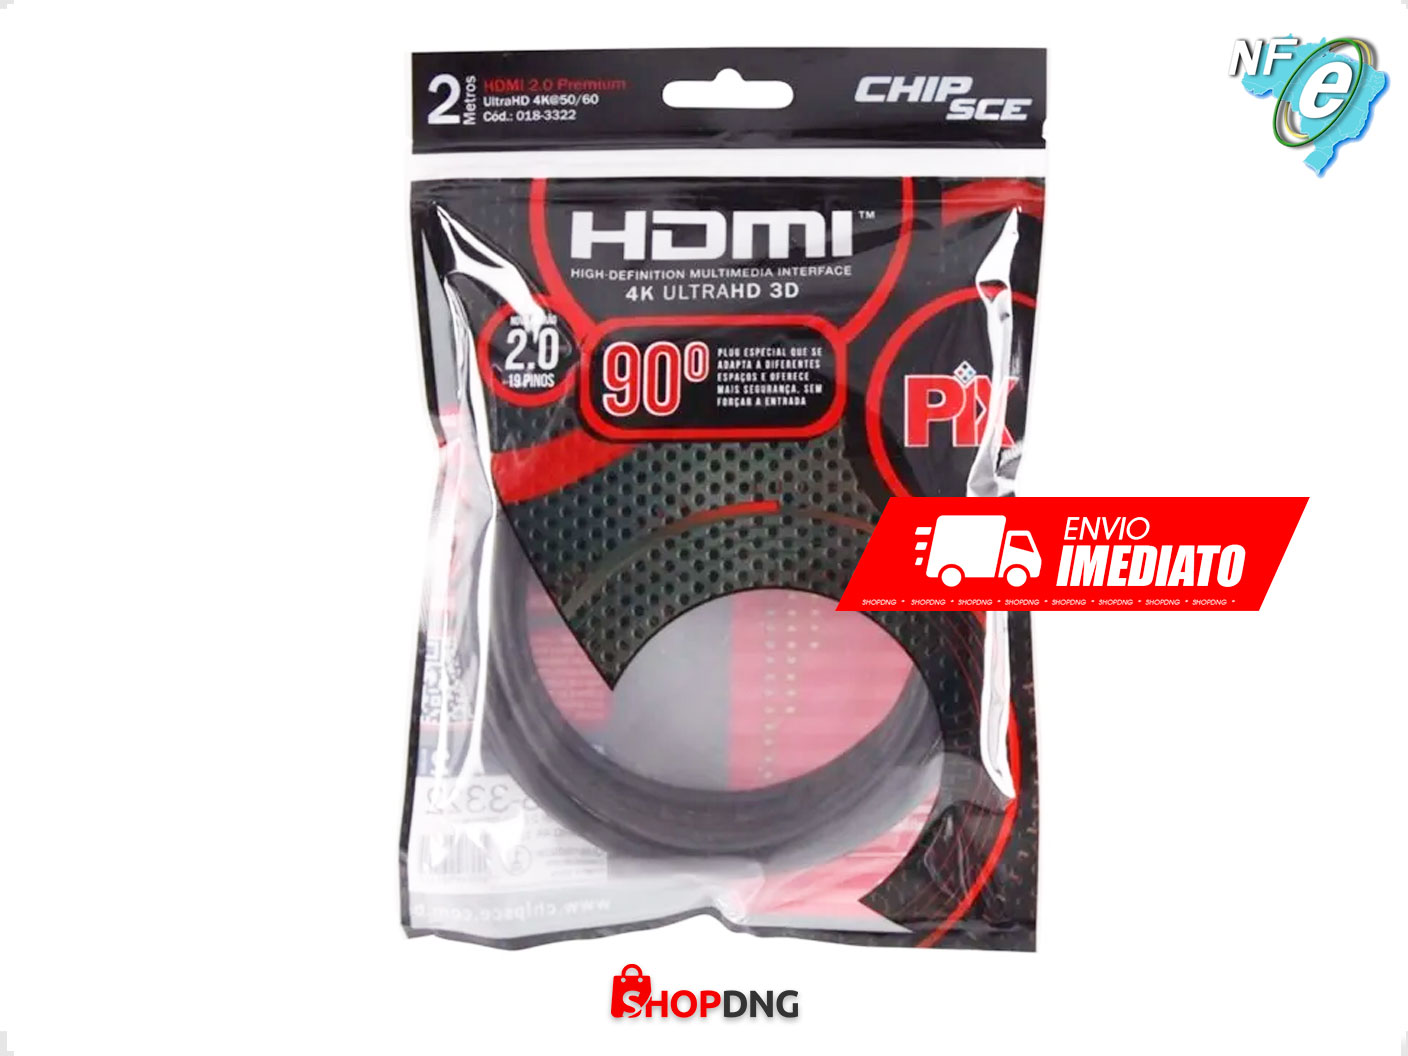 Cabo HDMI 2 90° 4K Ultra HD 3D ChipSce - 19 pinos - 2Metros